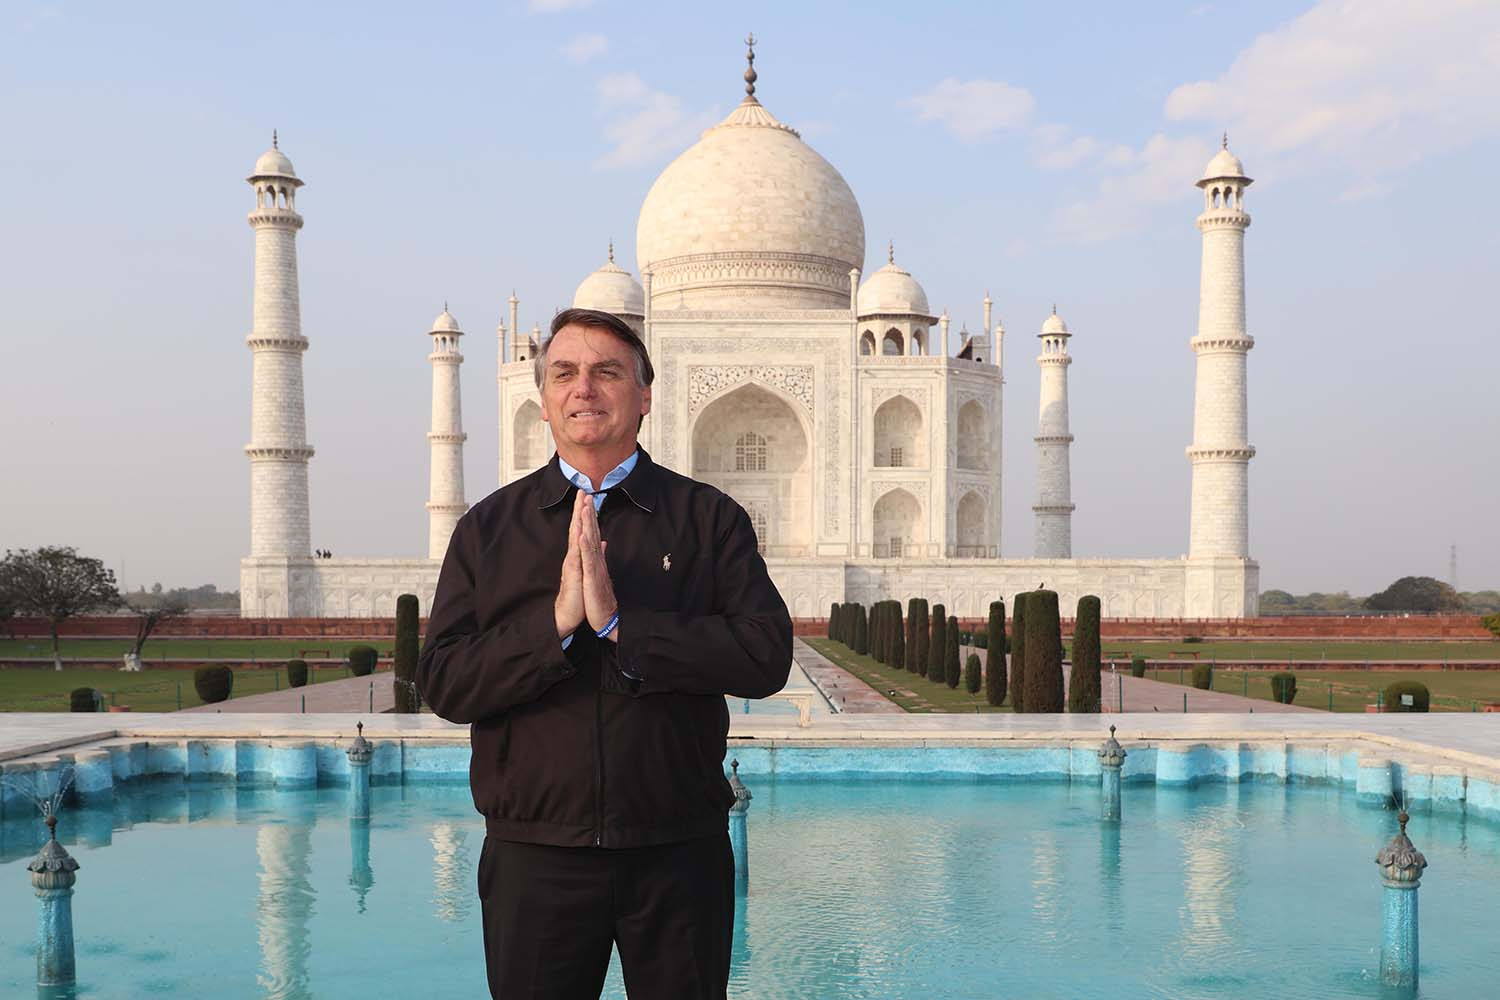 Brazilian President Jair Bolsonaro poses as he visits the Taj Mahal in Agra, India, on Jan. 27. STR/AFP via Getty Images